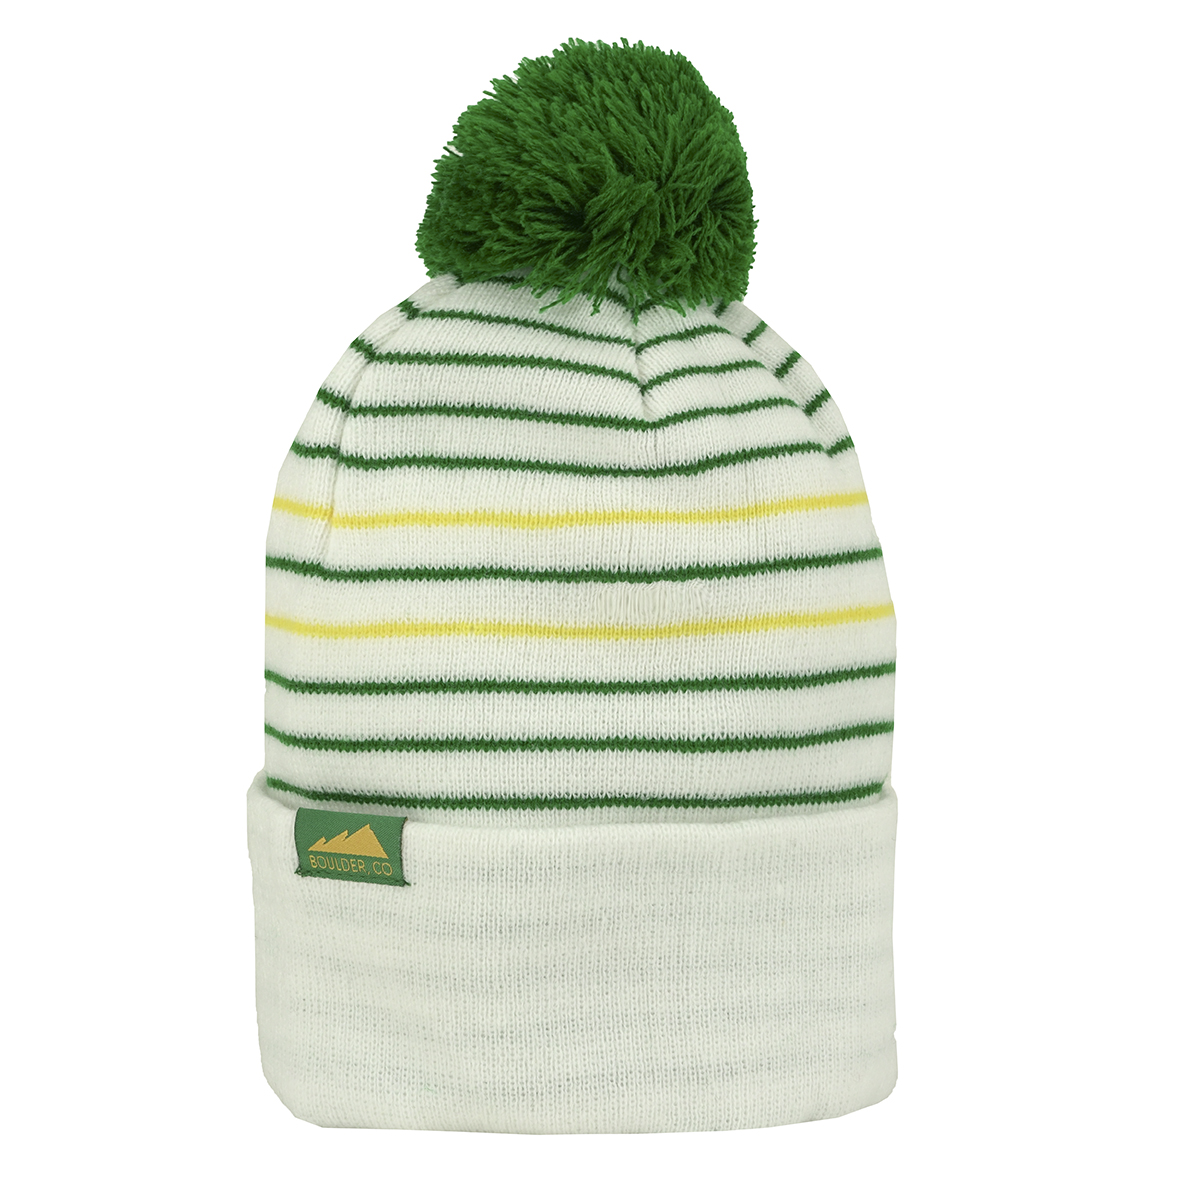 Details about Cirque Colorado Boulder Versatile Striped Beanie White Green f5ae063fb0c